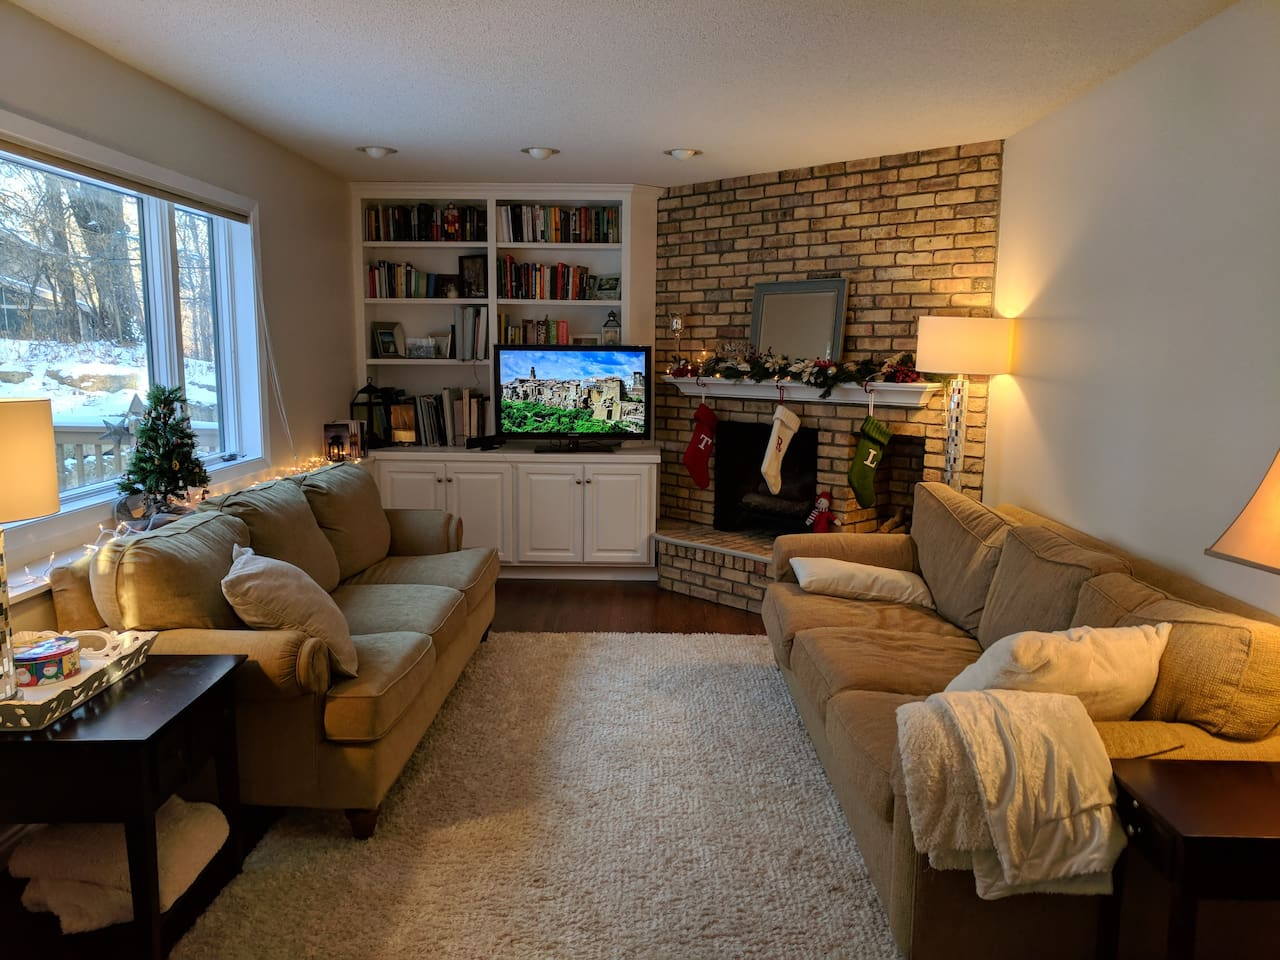 Snuggle up and watch the game in this cozy family room.  Games and DVDs available to add a little more fun!